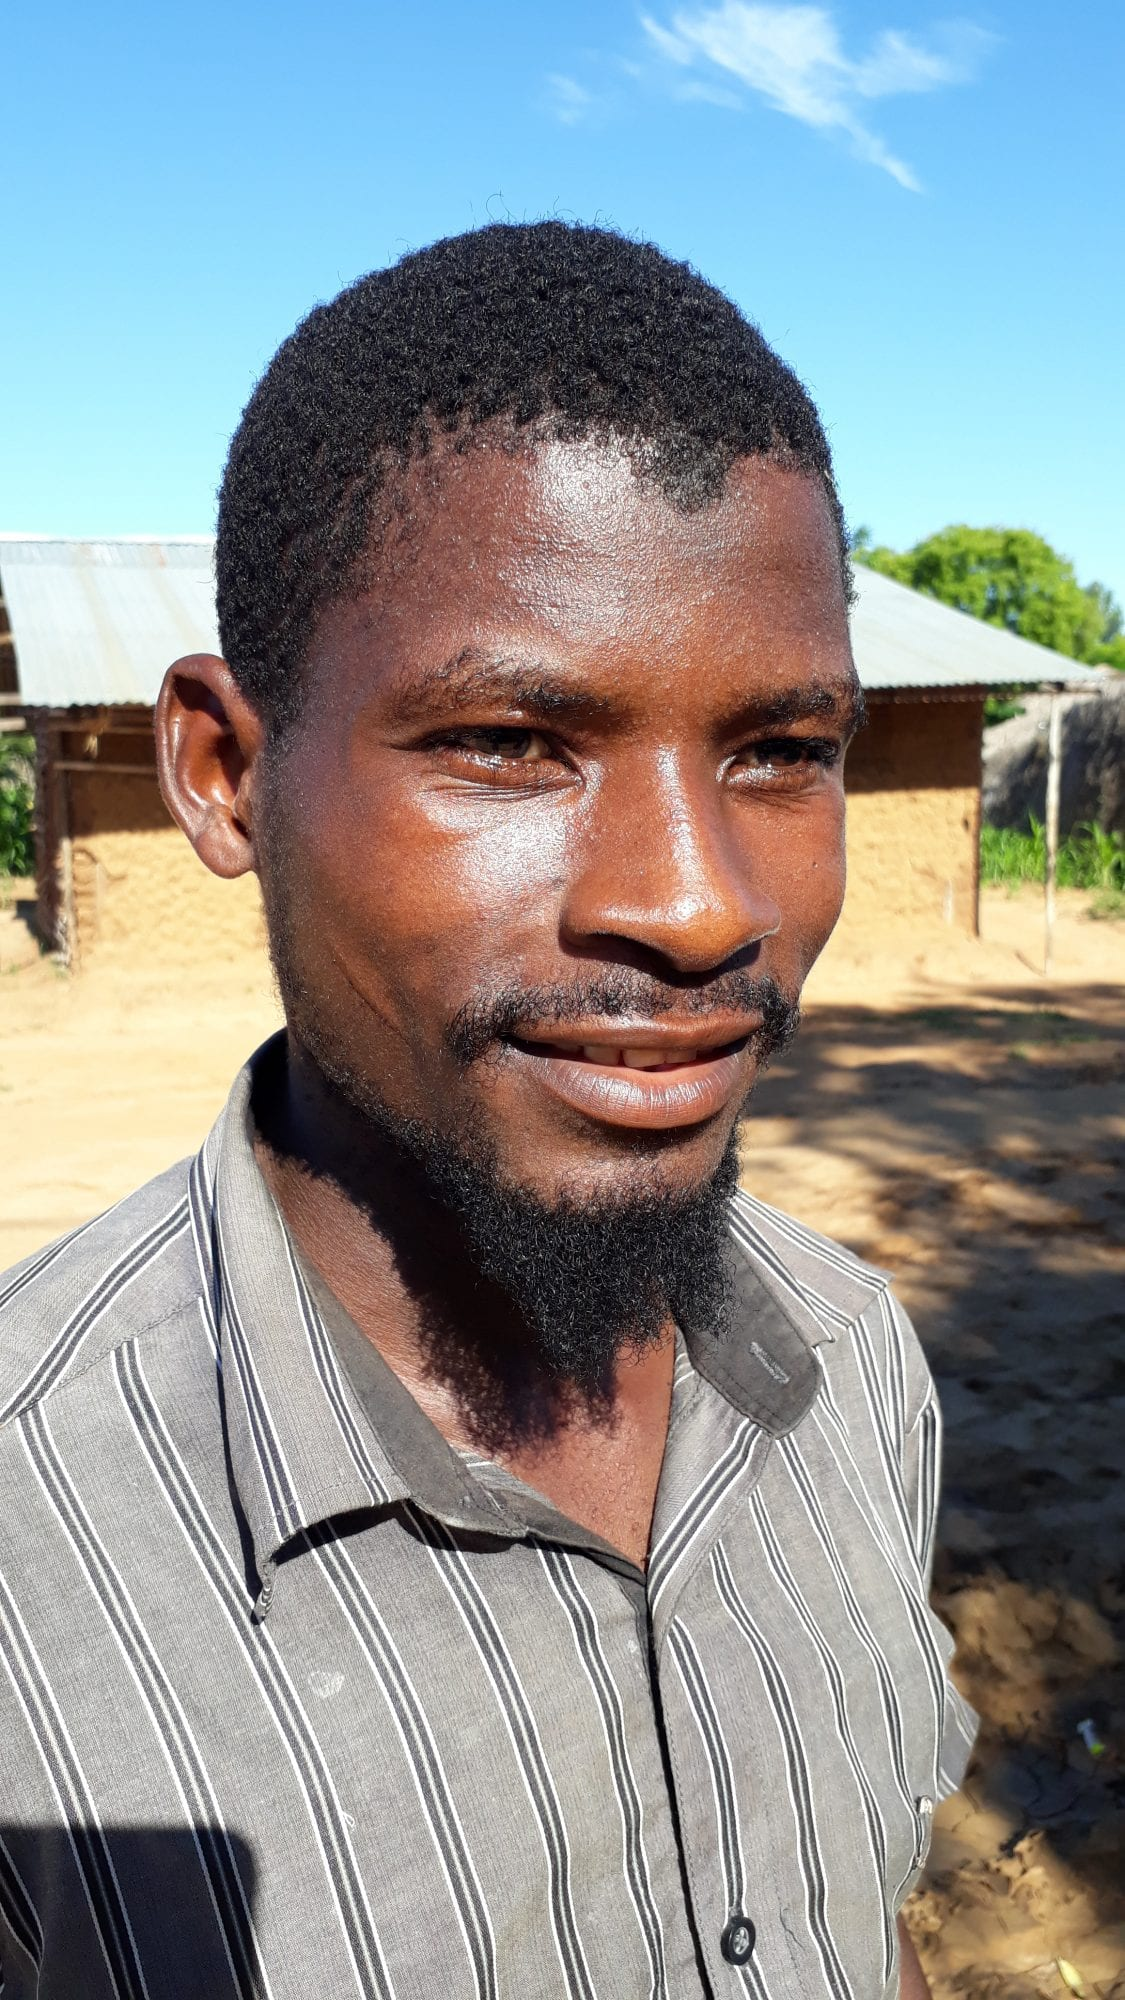 Image of Issufo Momade, a smallholder farmer in Mozambique